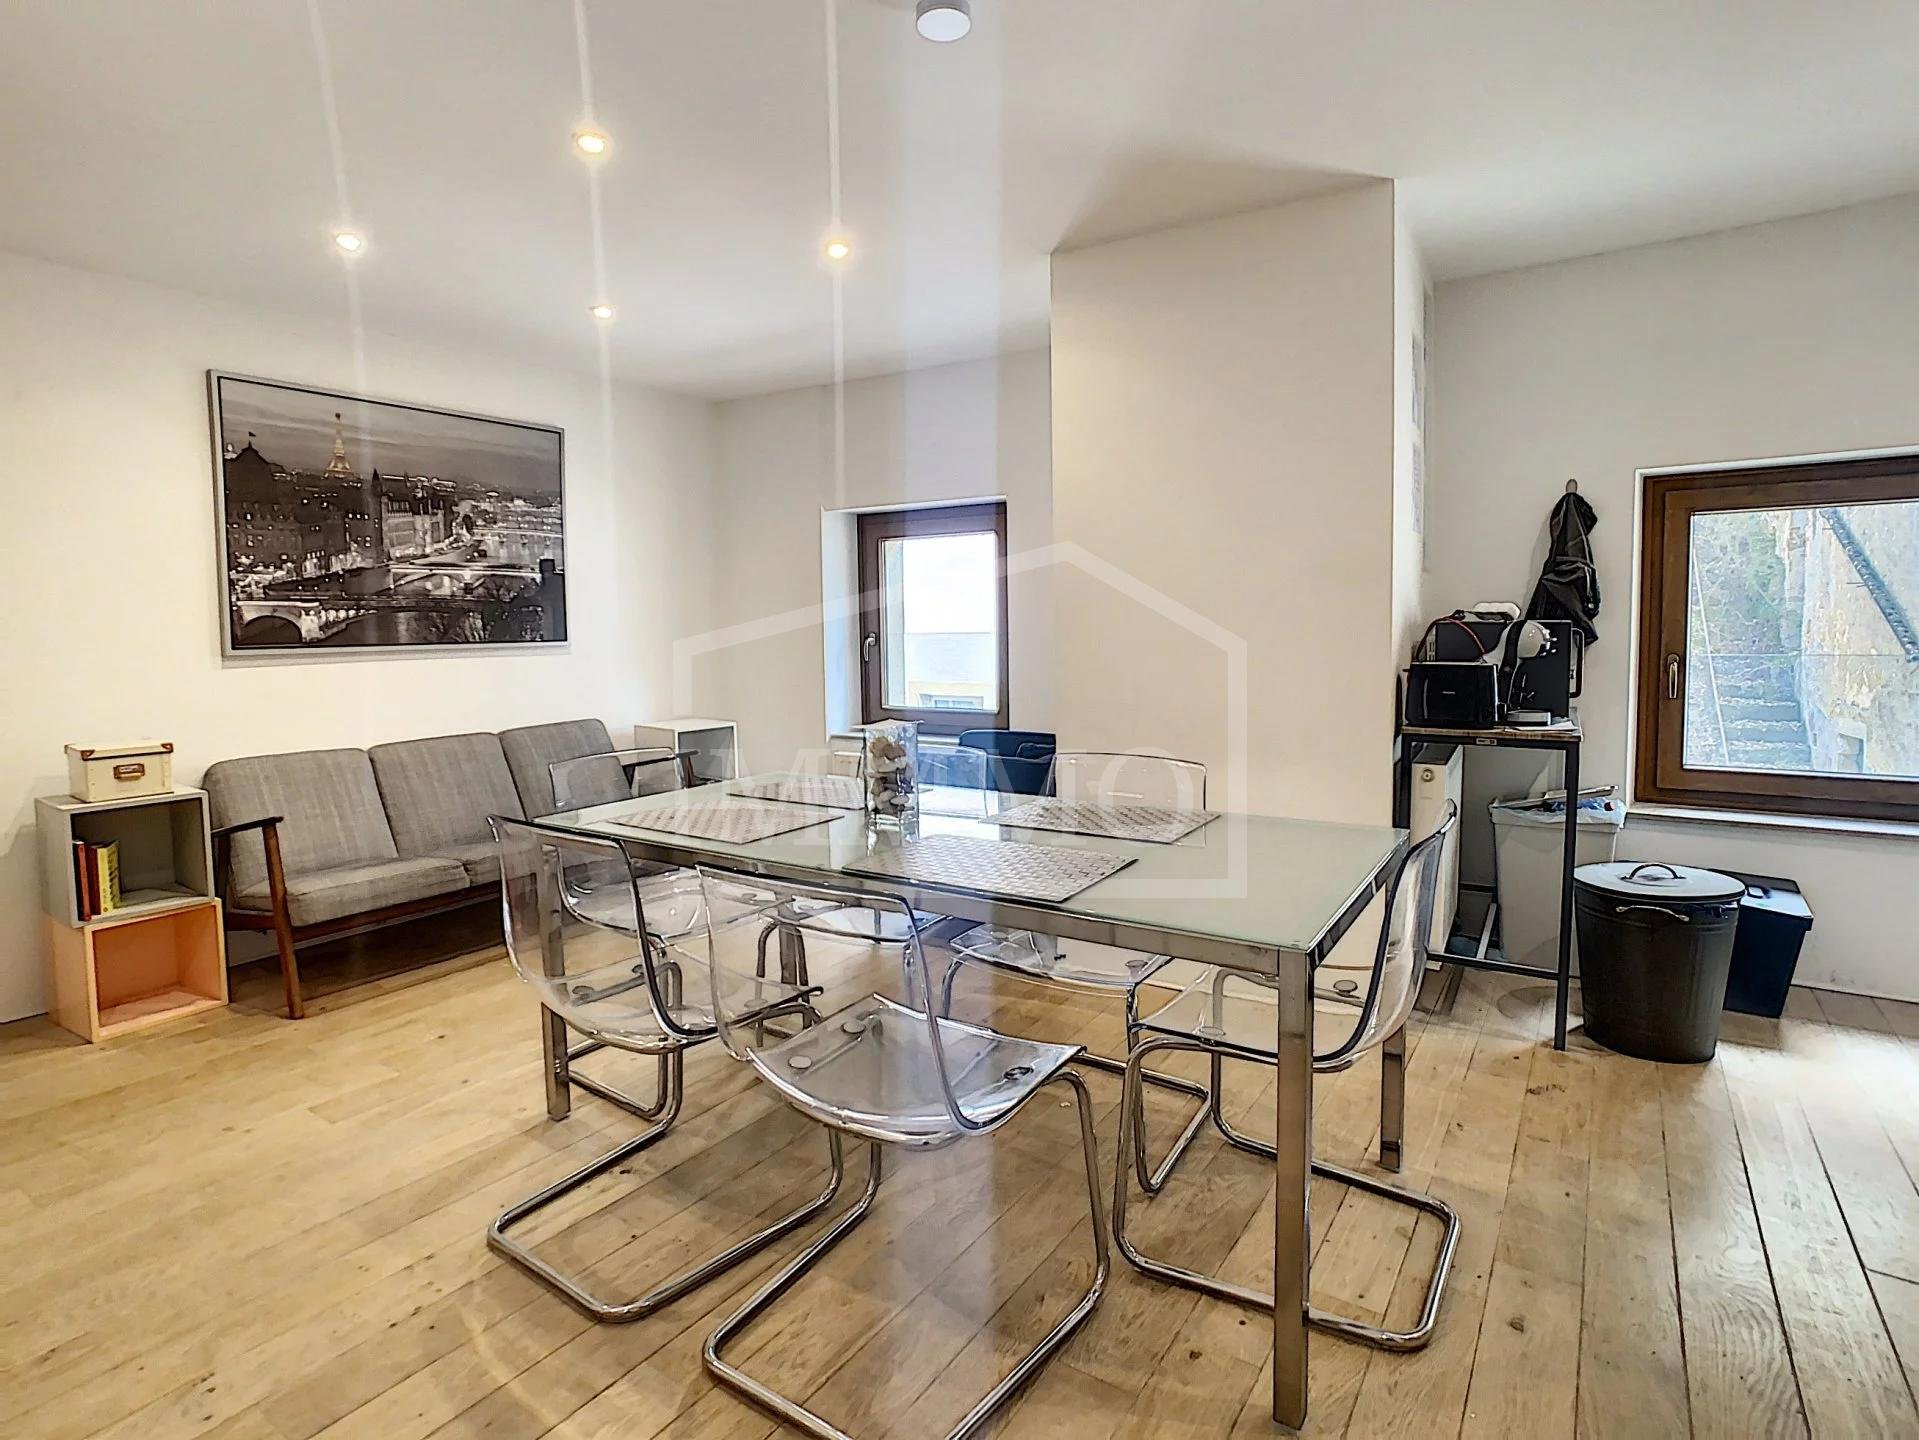 Rental Bedroom - Luxembourg Centre ville - Luxembourg